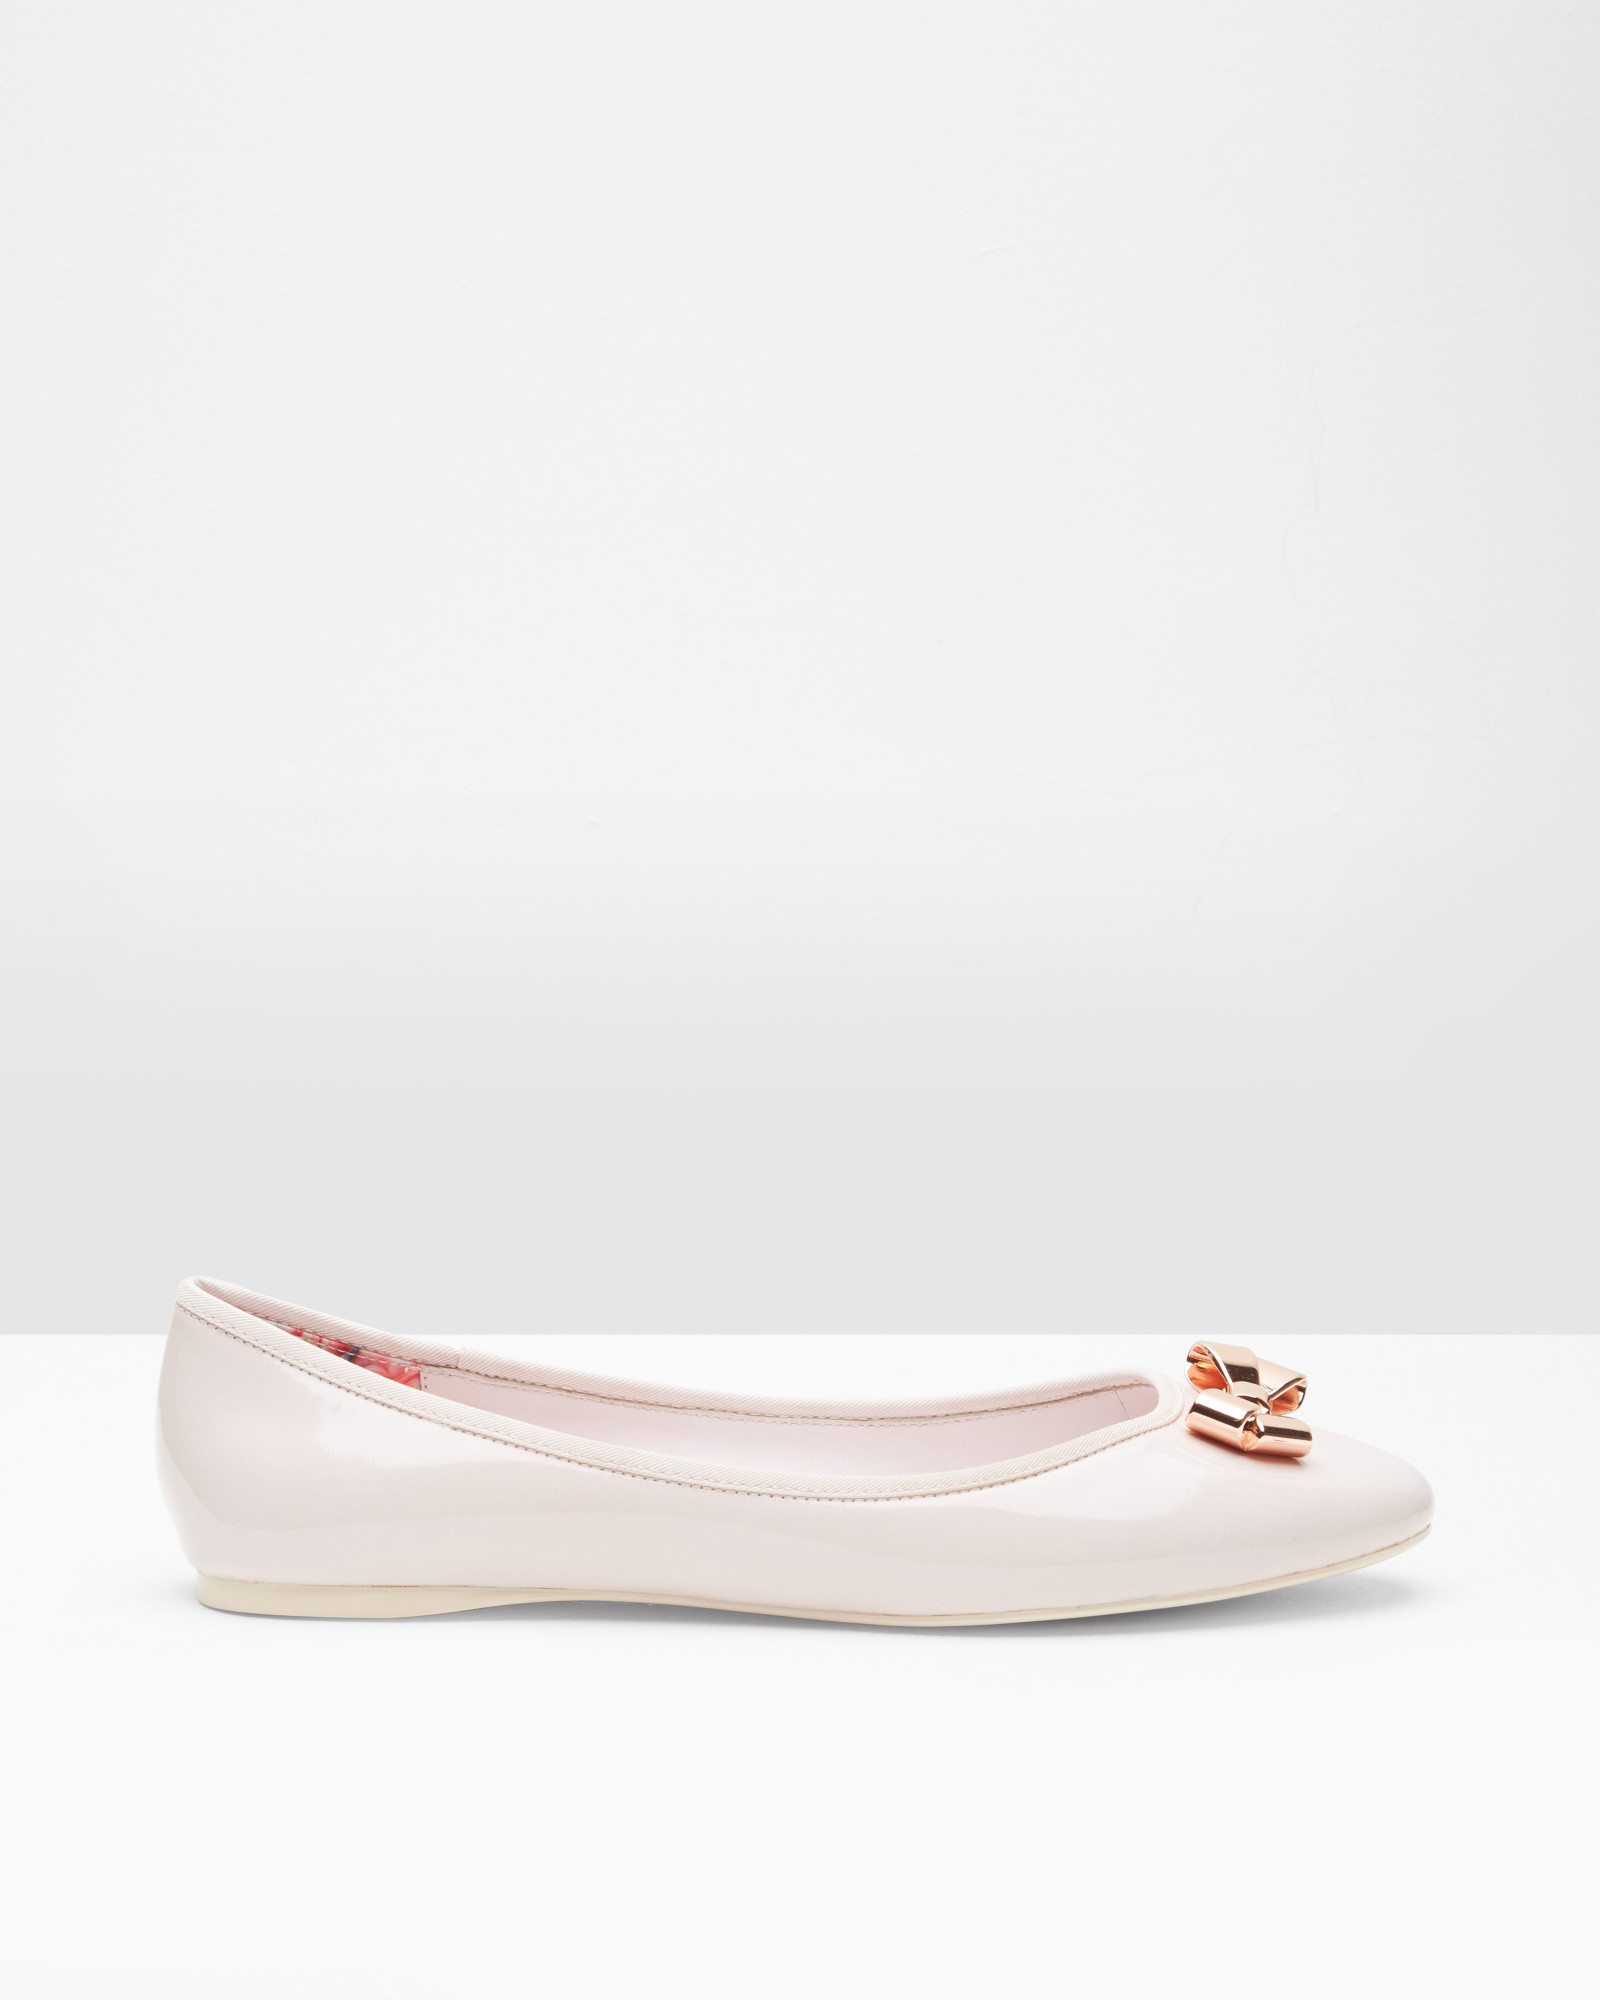 576949318a54e1 Ted Baker Bow Detail Ballerina Pumps in Pink - Lyst